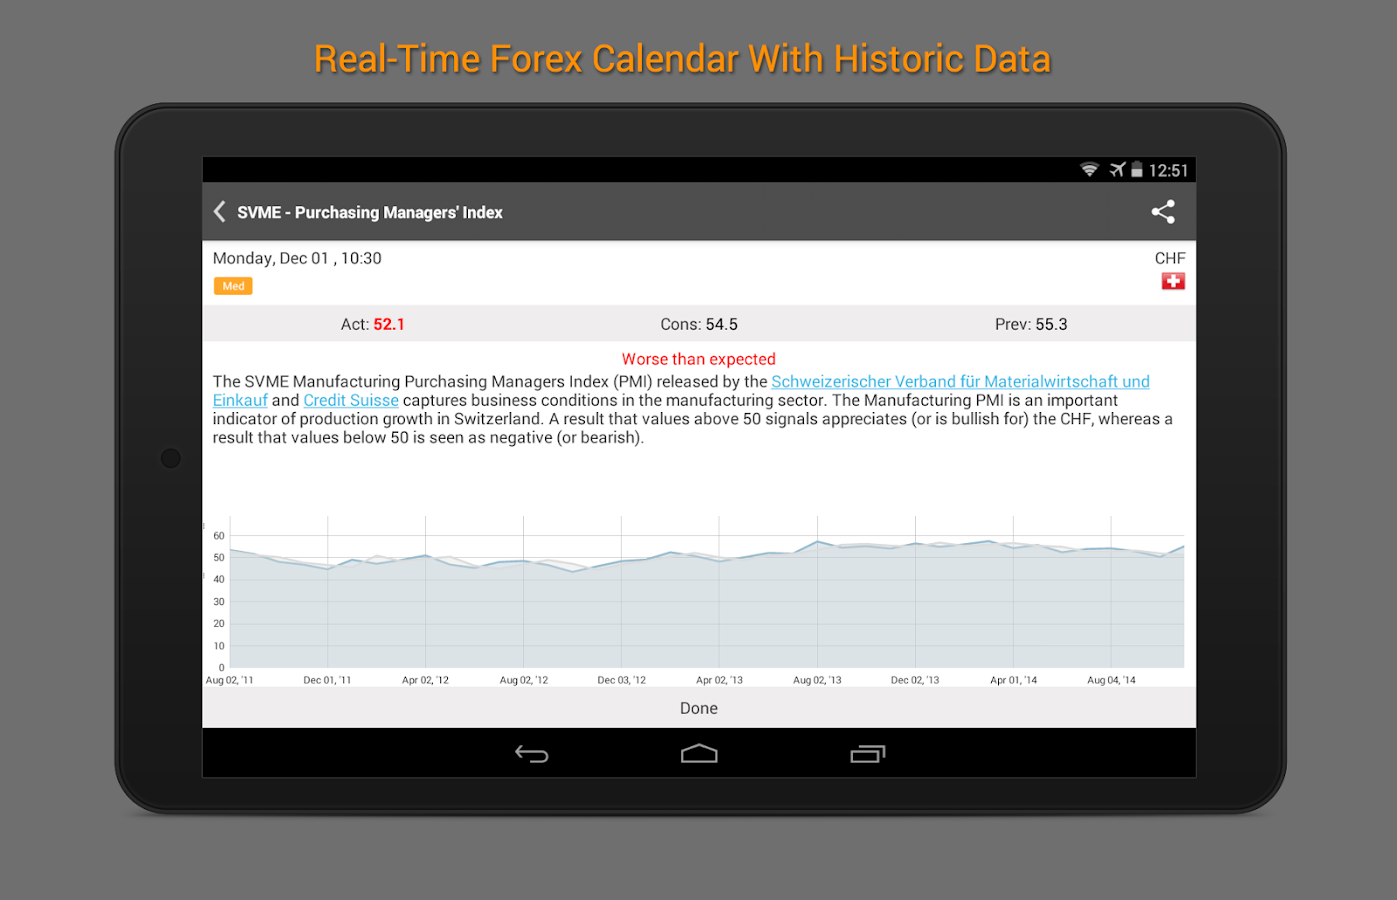 Forex calendar application